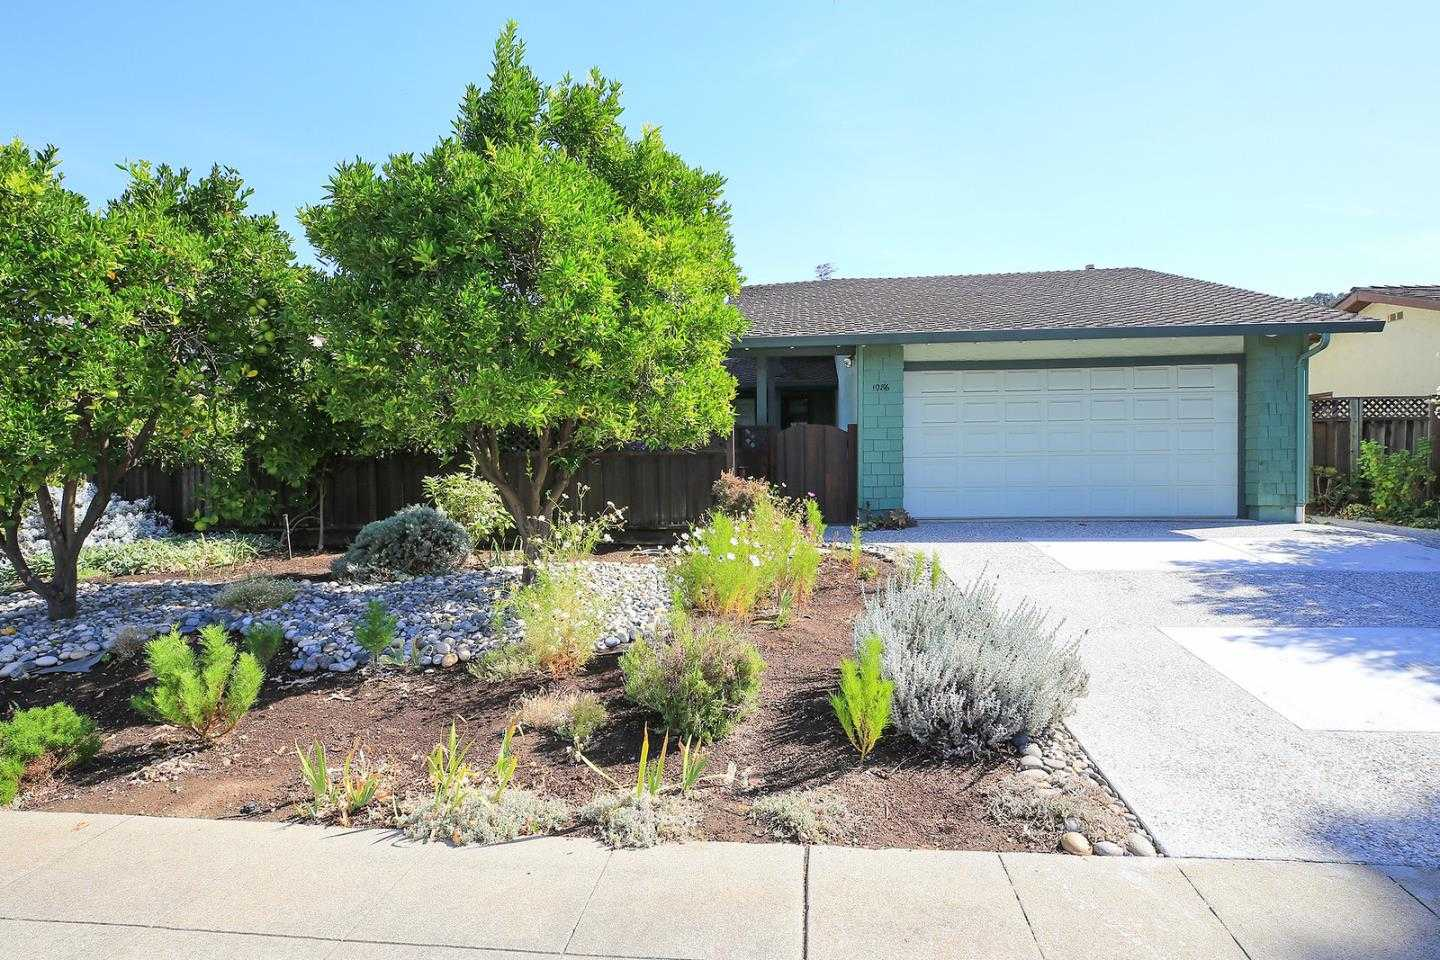 $1,750,000 - 4Br/2Ba -  for Sale in Sunnyvale